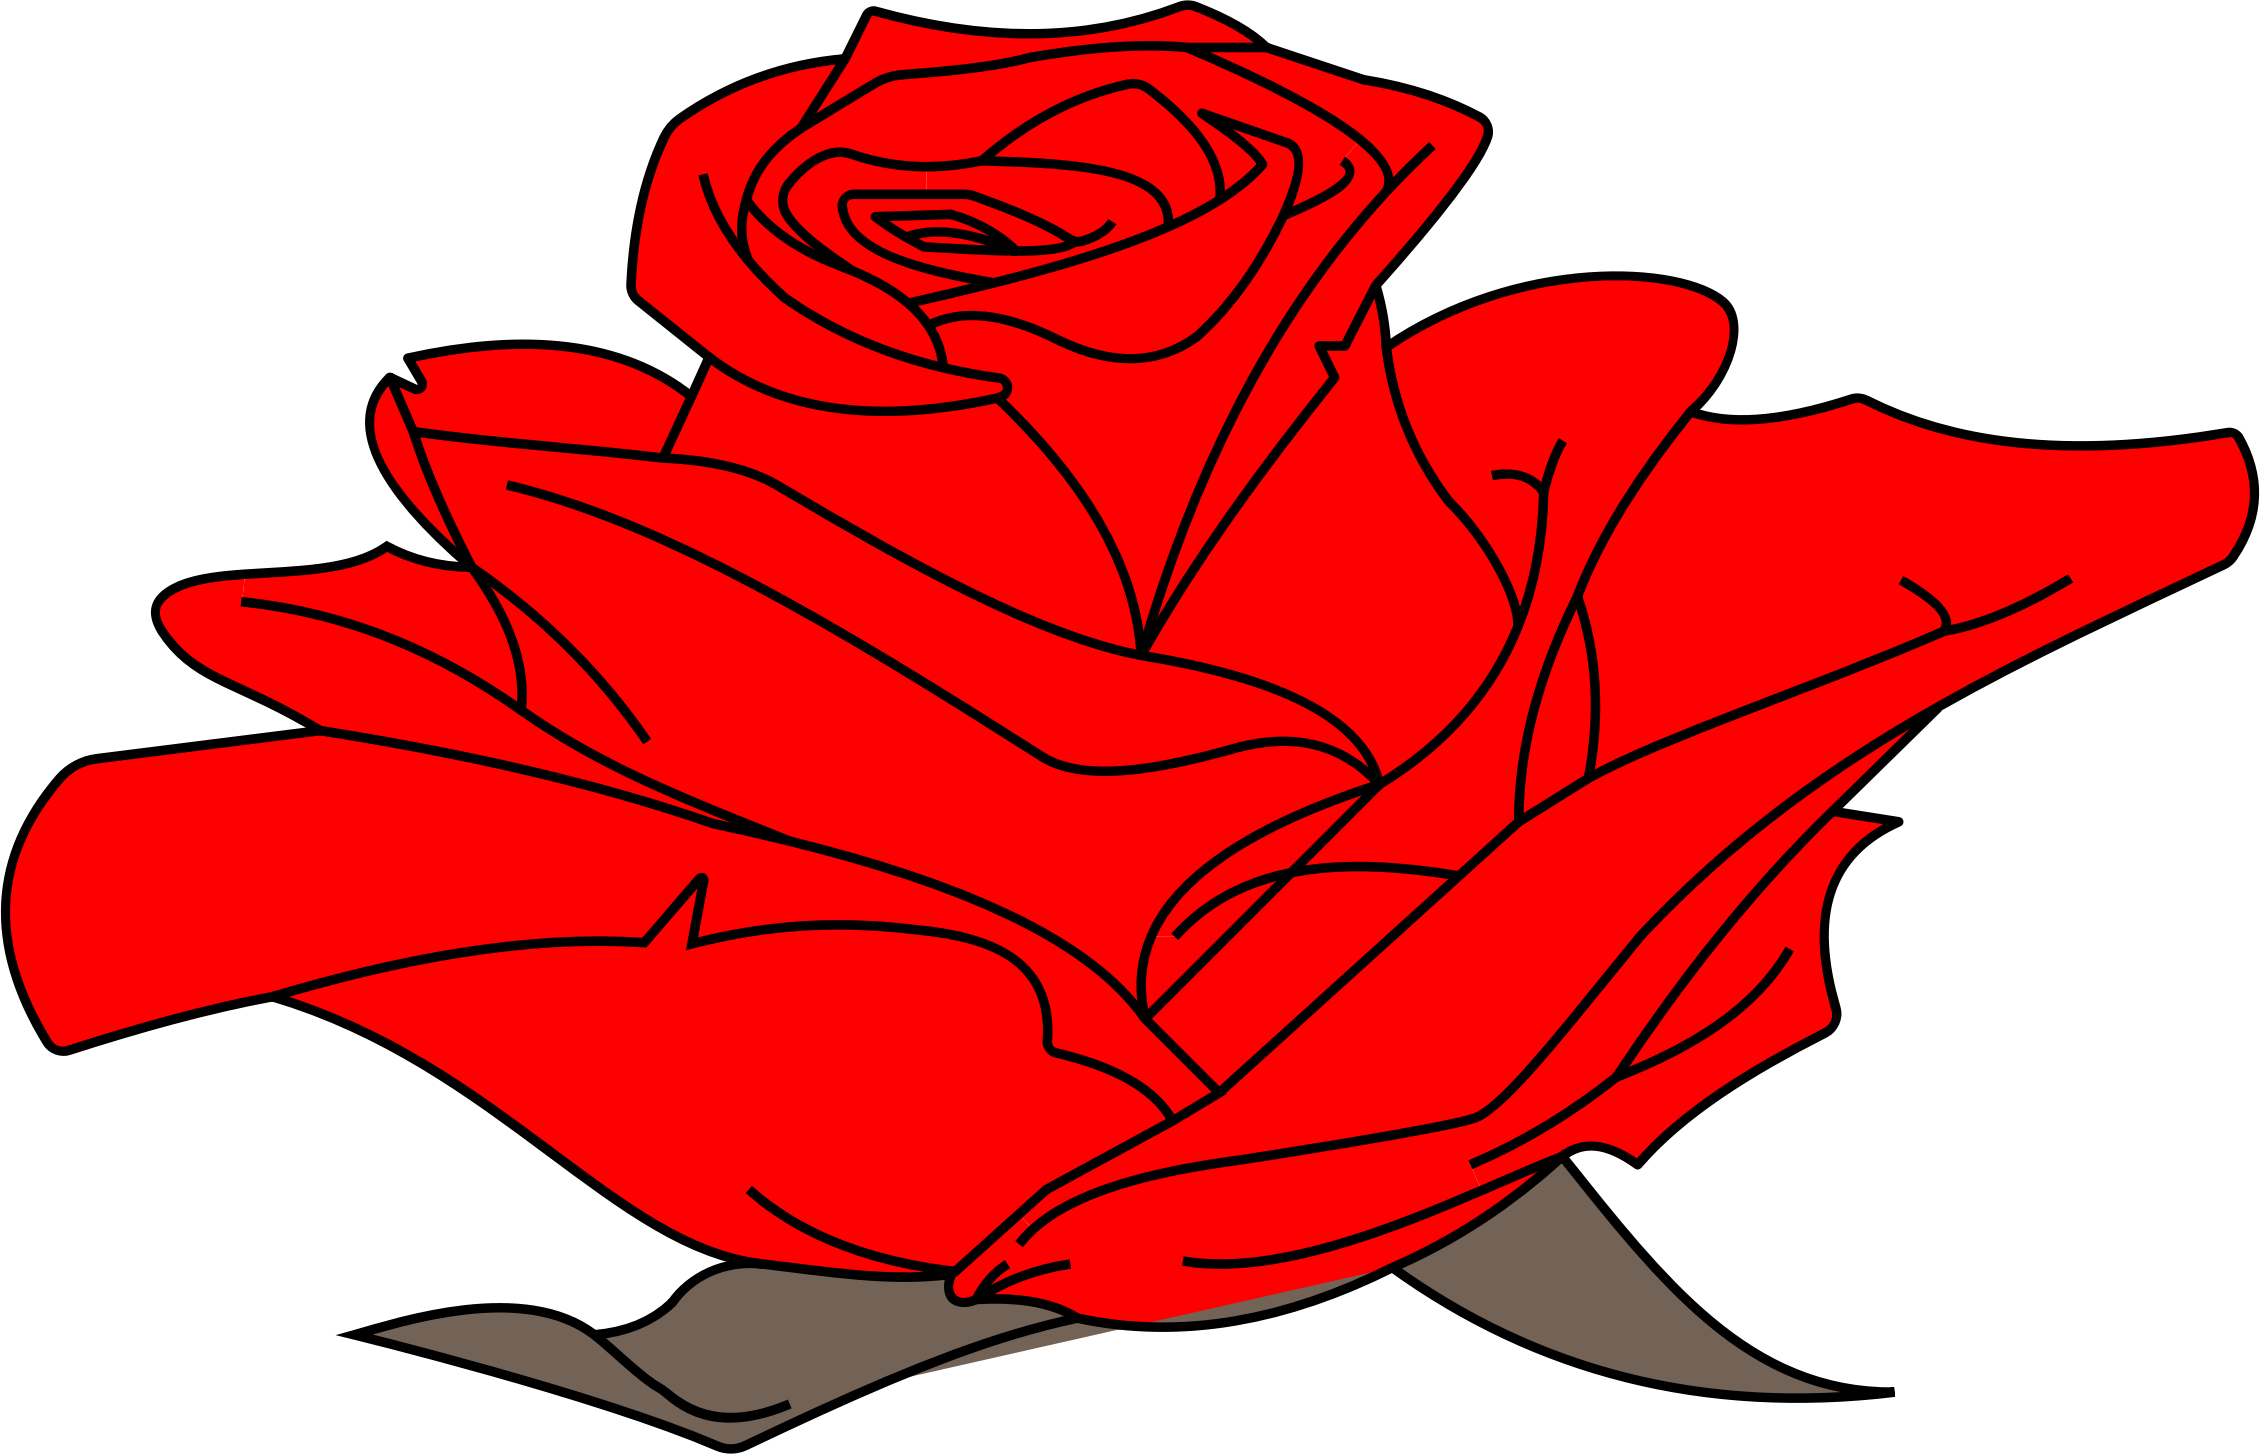 Clipart - Colored Rose Line Art